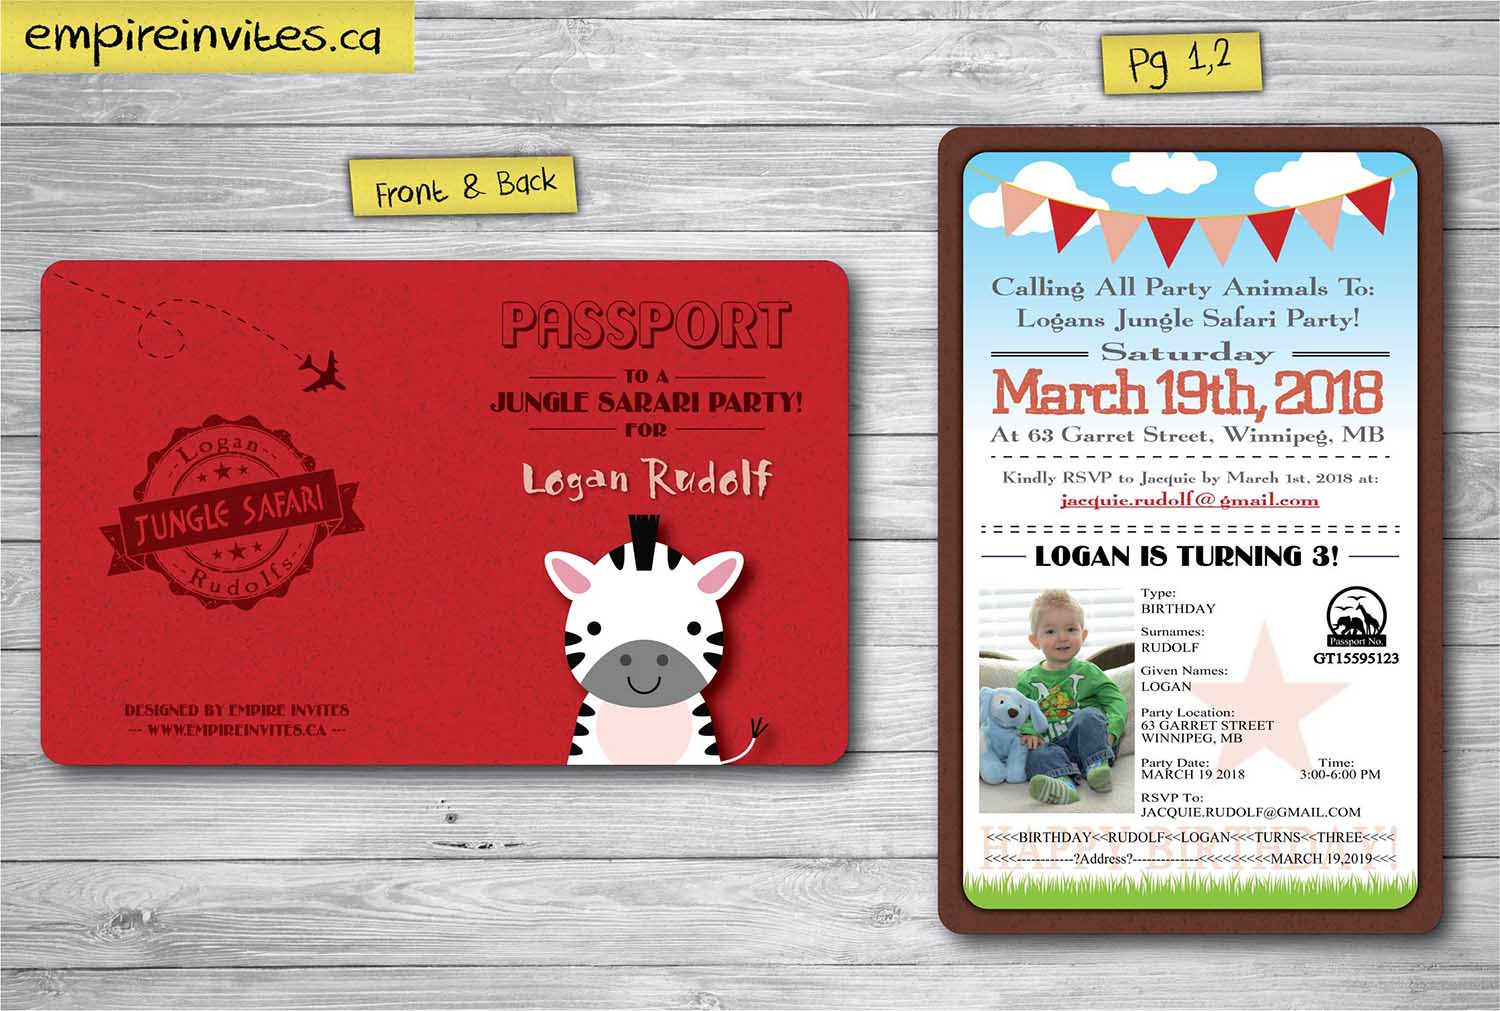 Custom birthday safari passport invitations Canada | Empire Invites